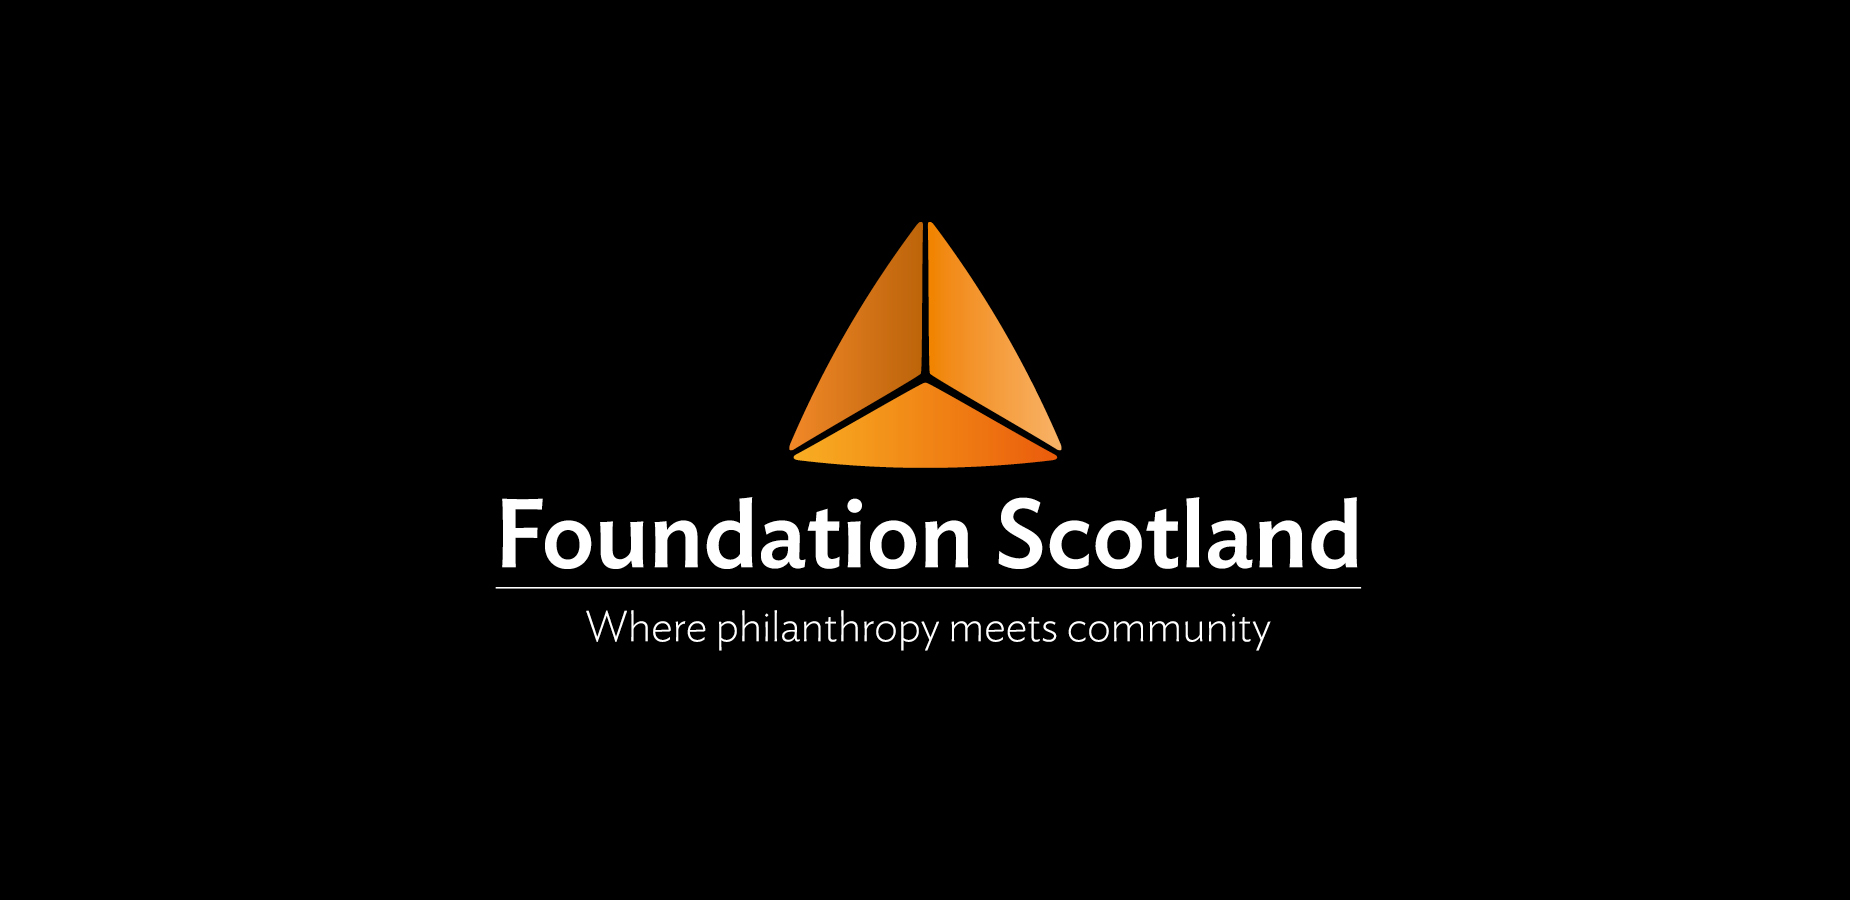 foundation scotland logo 1800x750